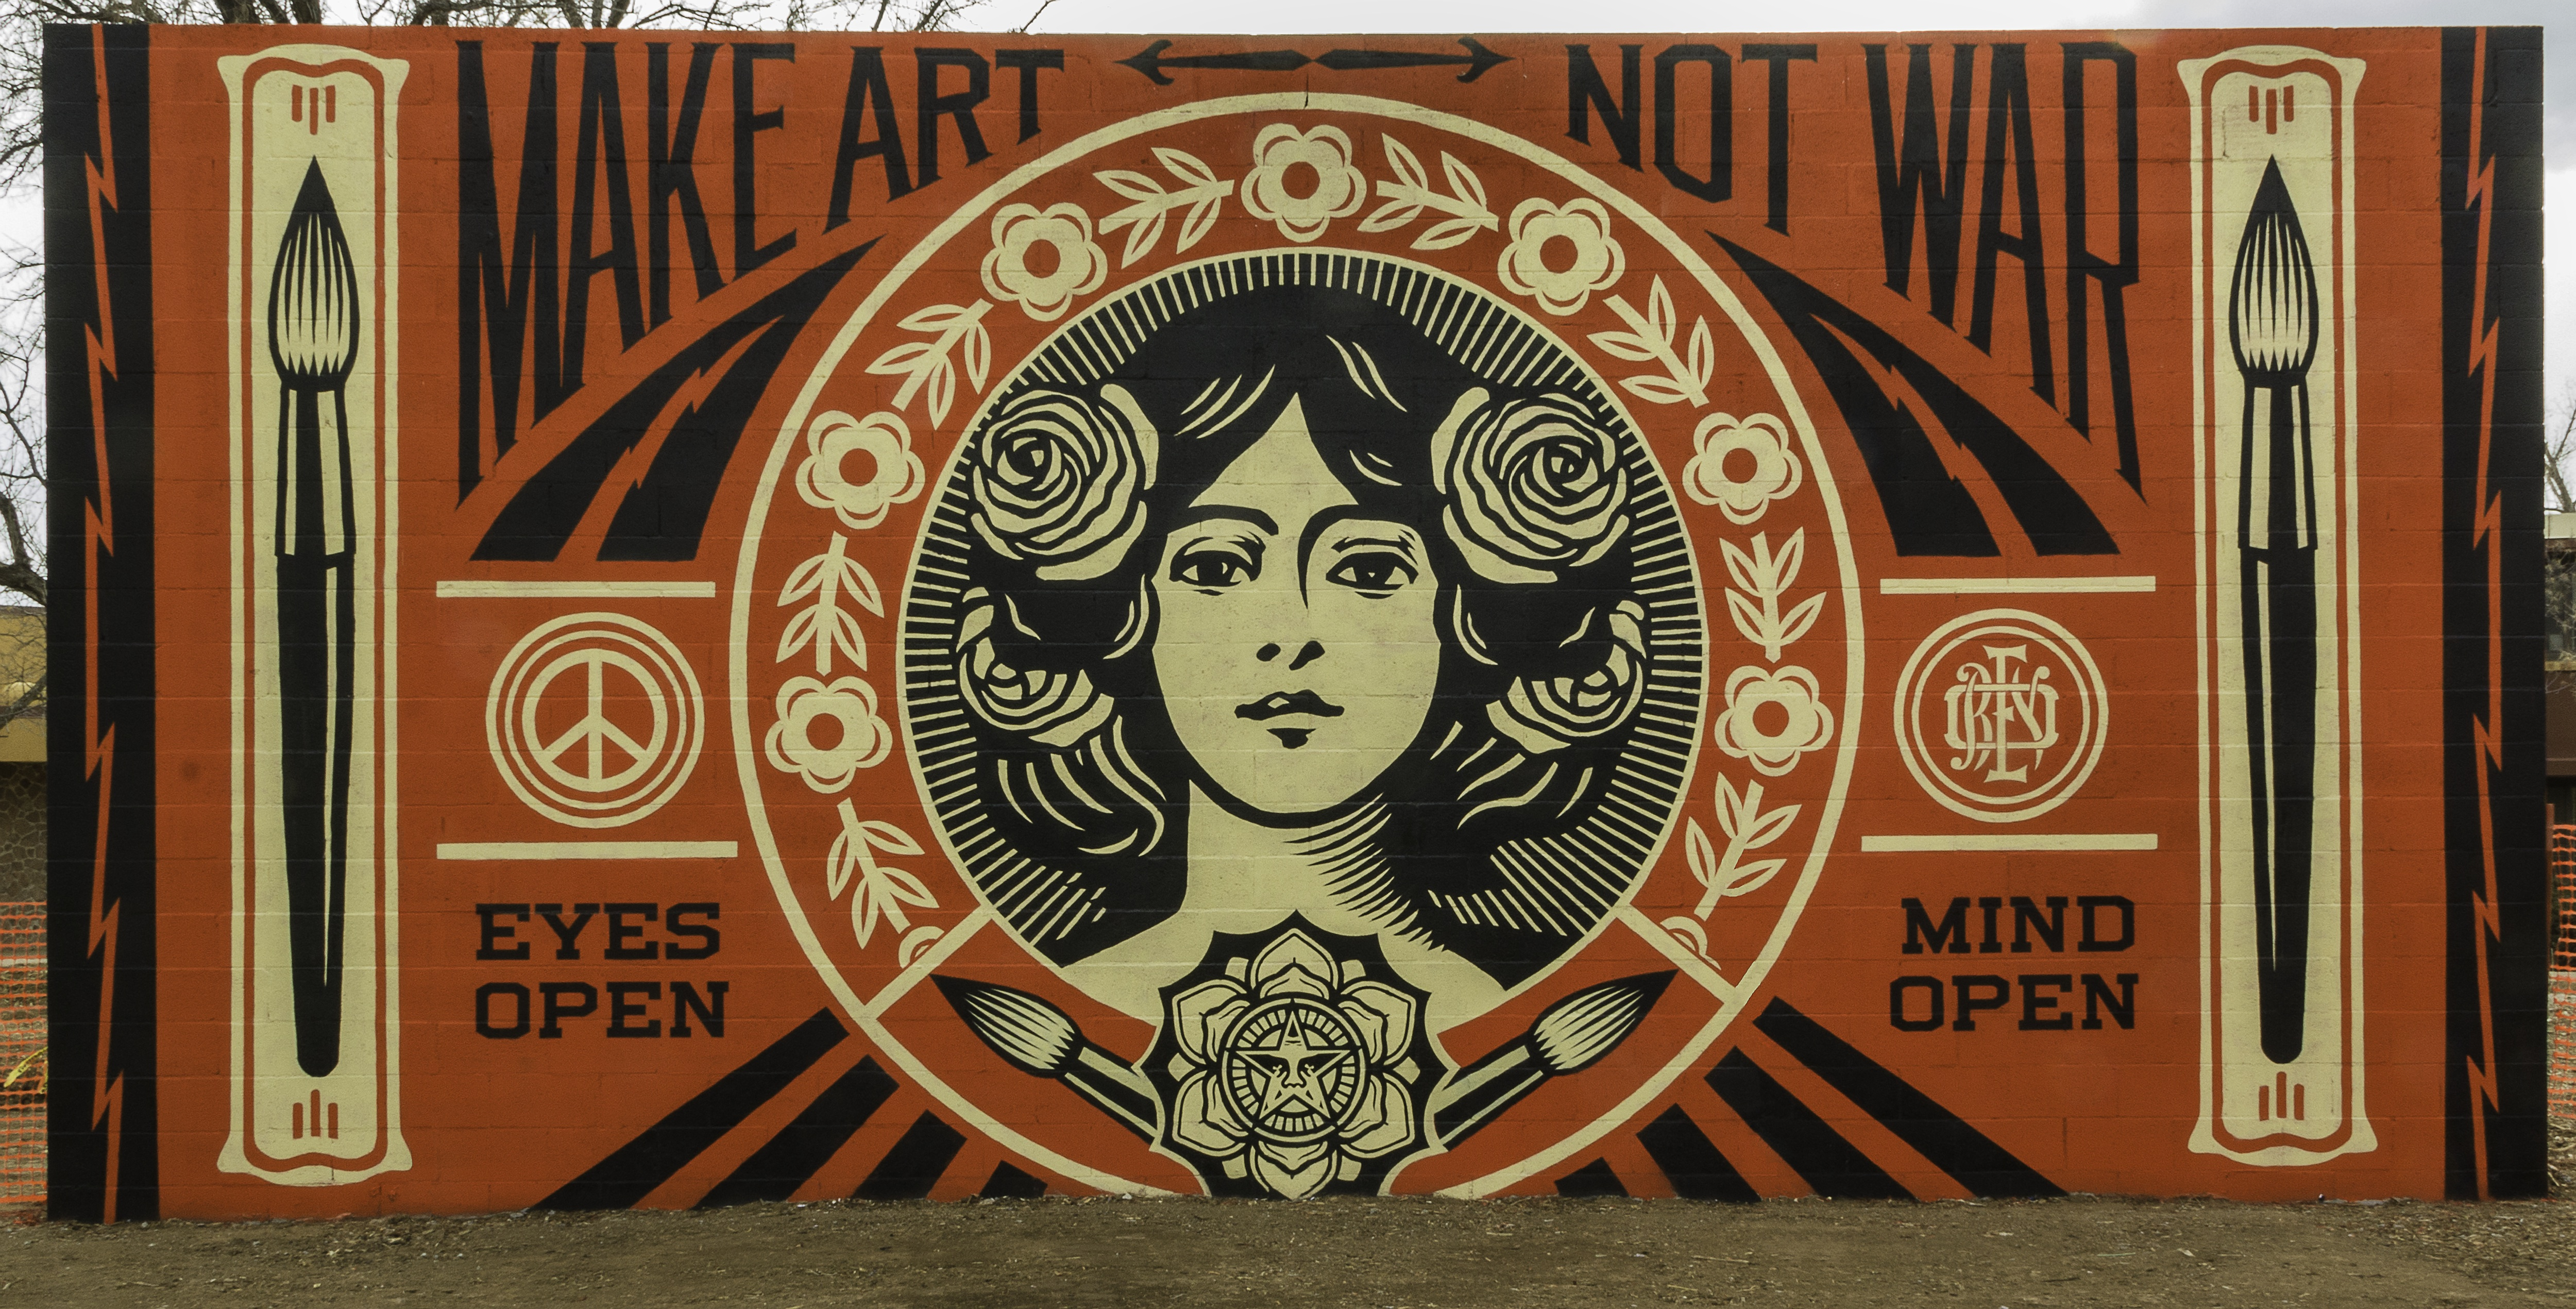 the life and work of shepard fairey and his role in the remix culture